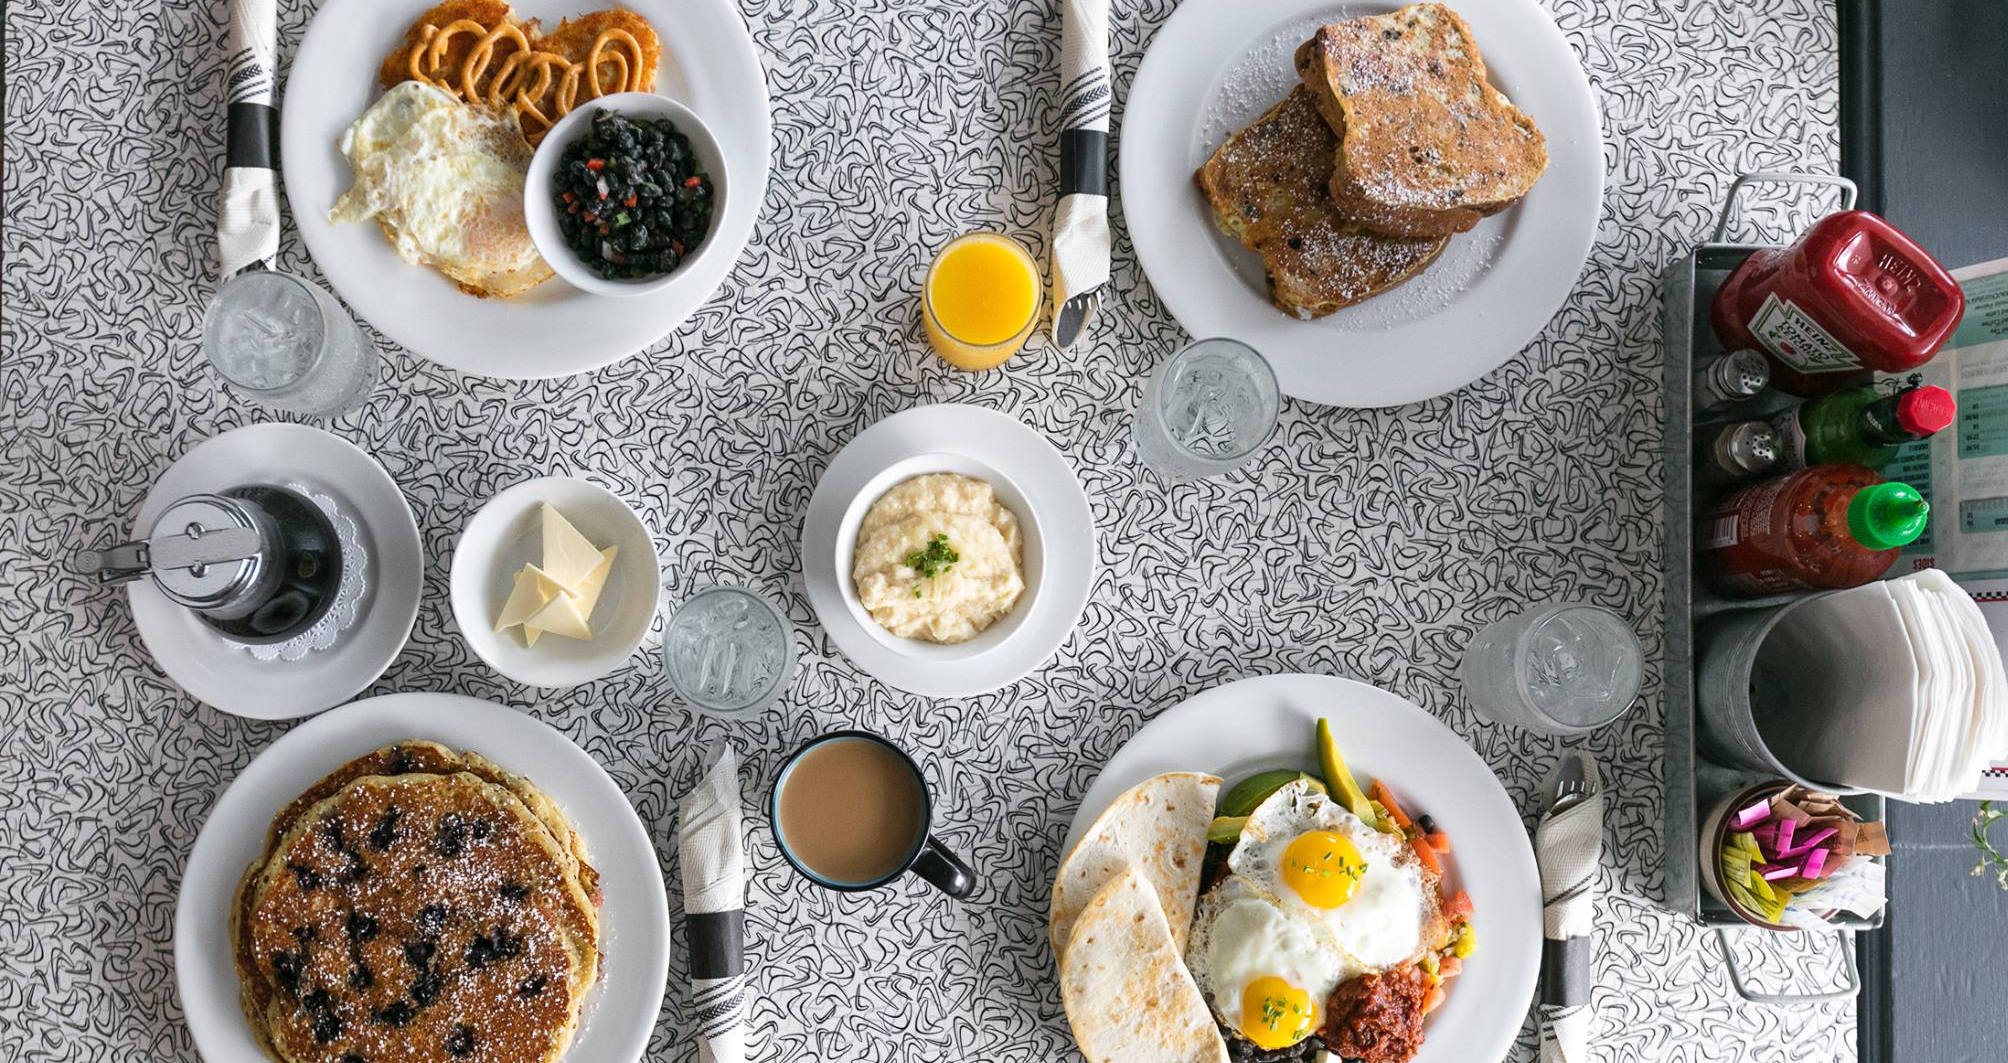 Chatham Is One Of The More Tony Towns On Cape But There S A Refreshingly Humble Vibe To This Clic Roadside Diner Inspired Newcomer Which Opened In